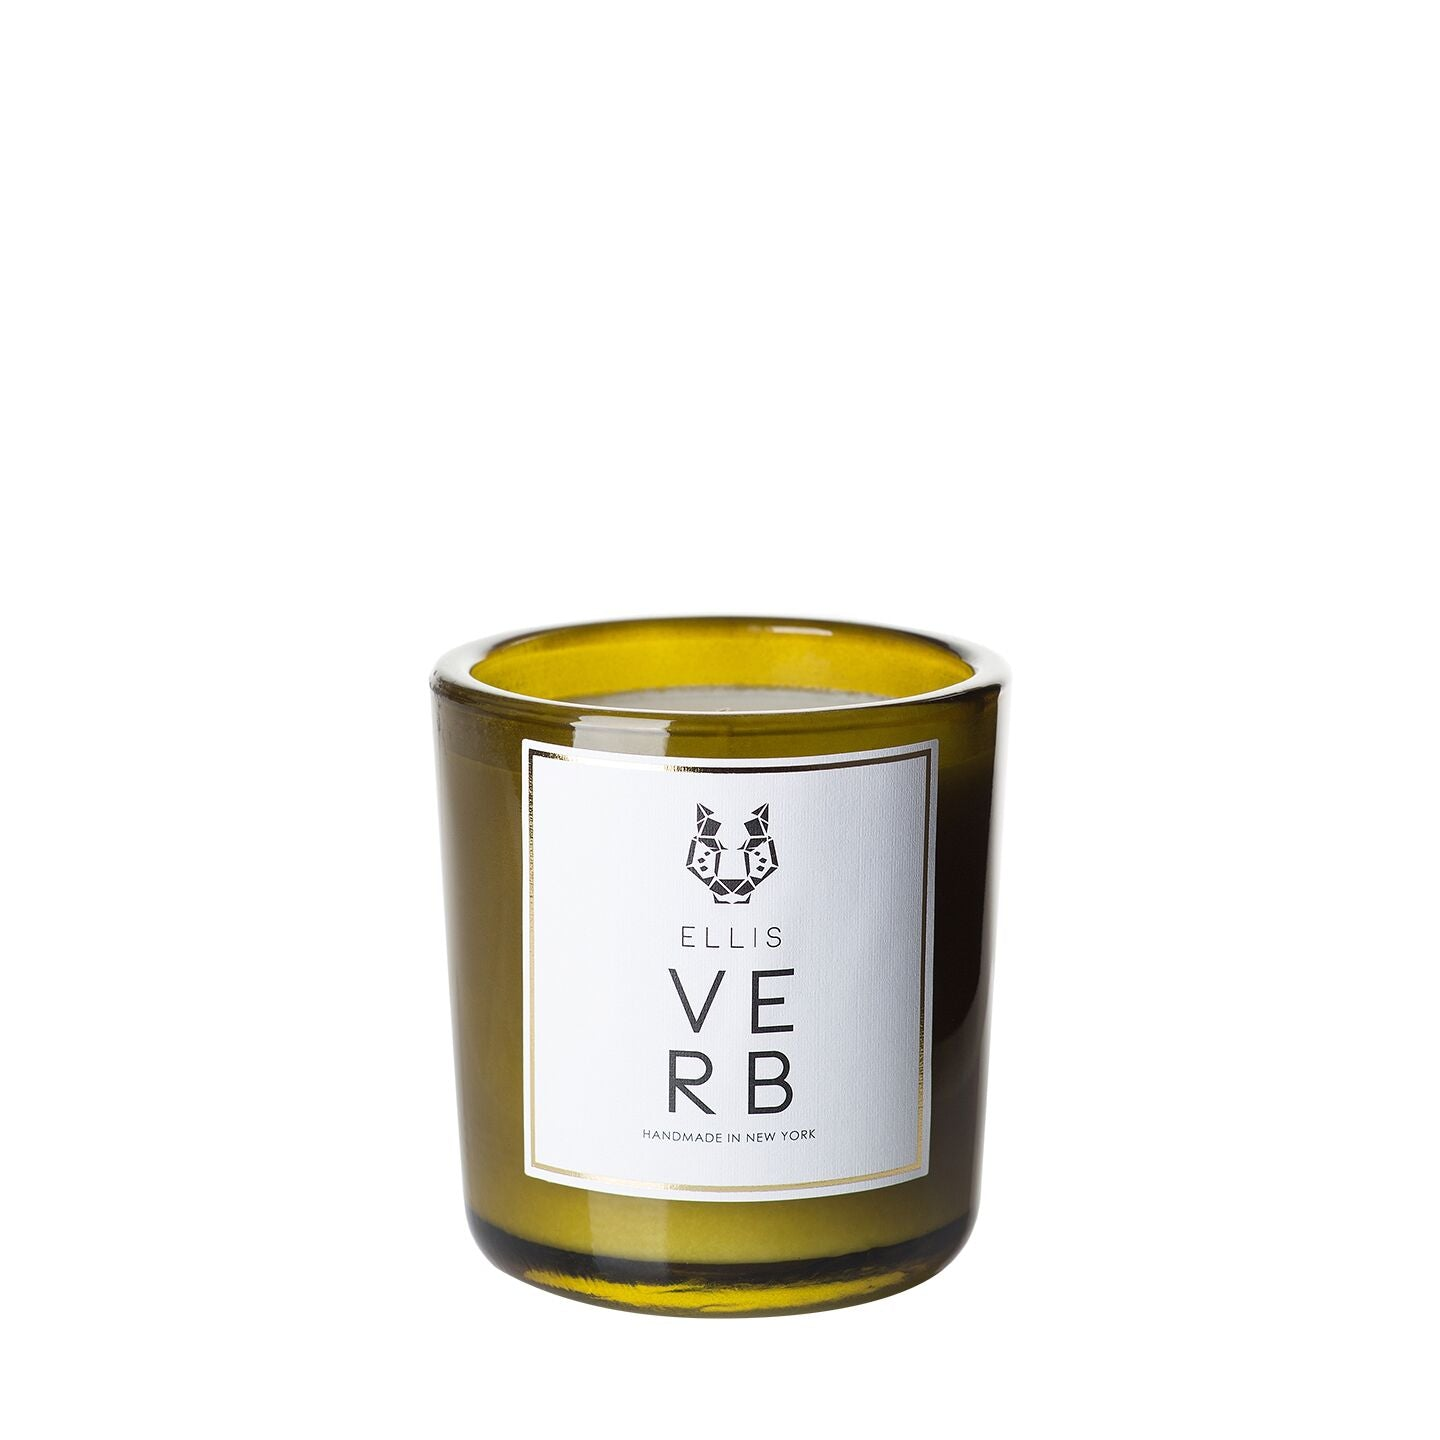 Ellis Brooklyn Scented Candle - Verb